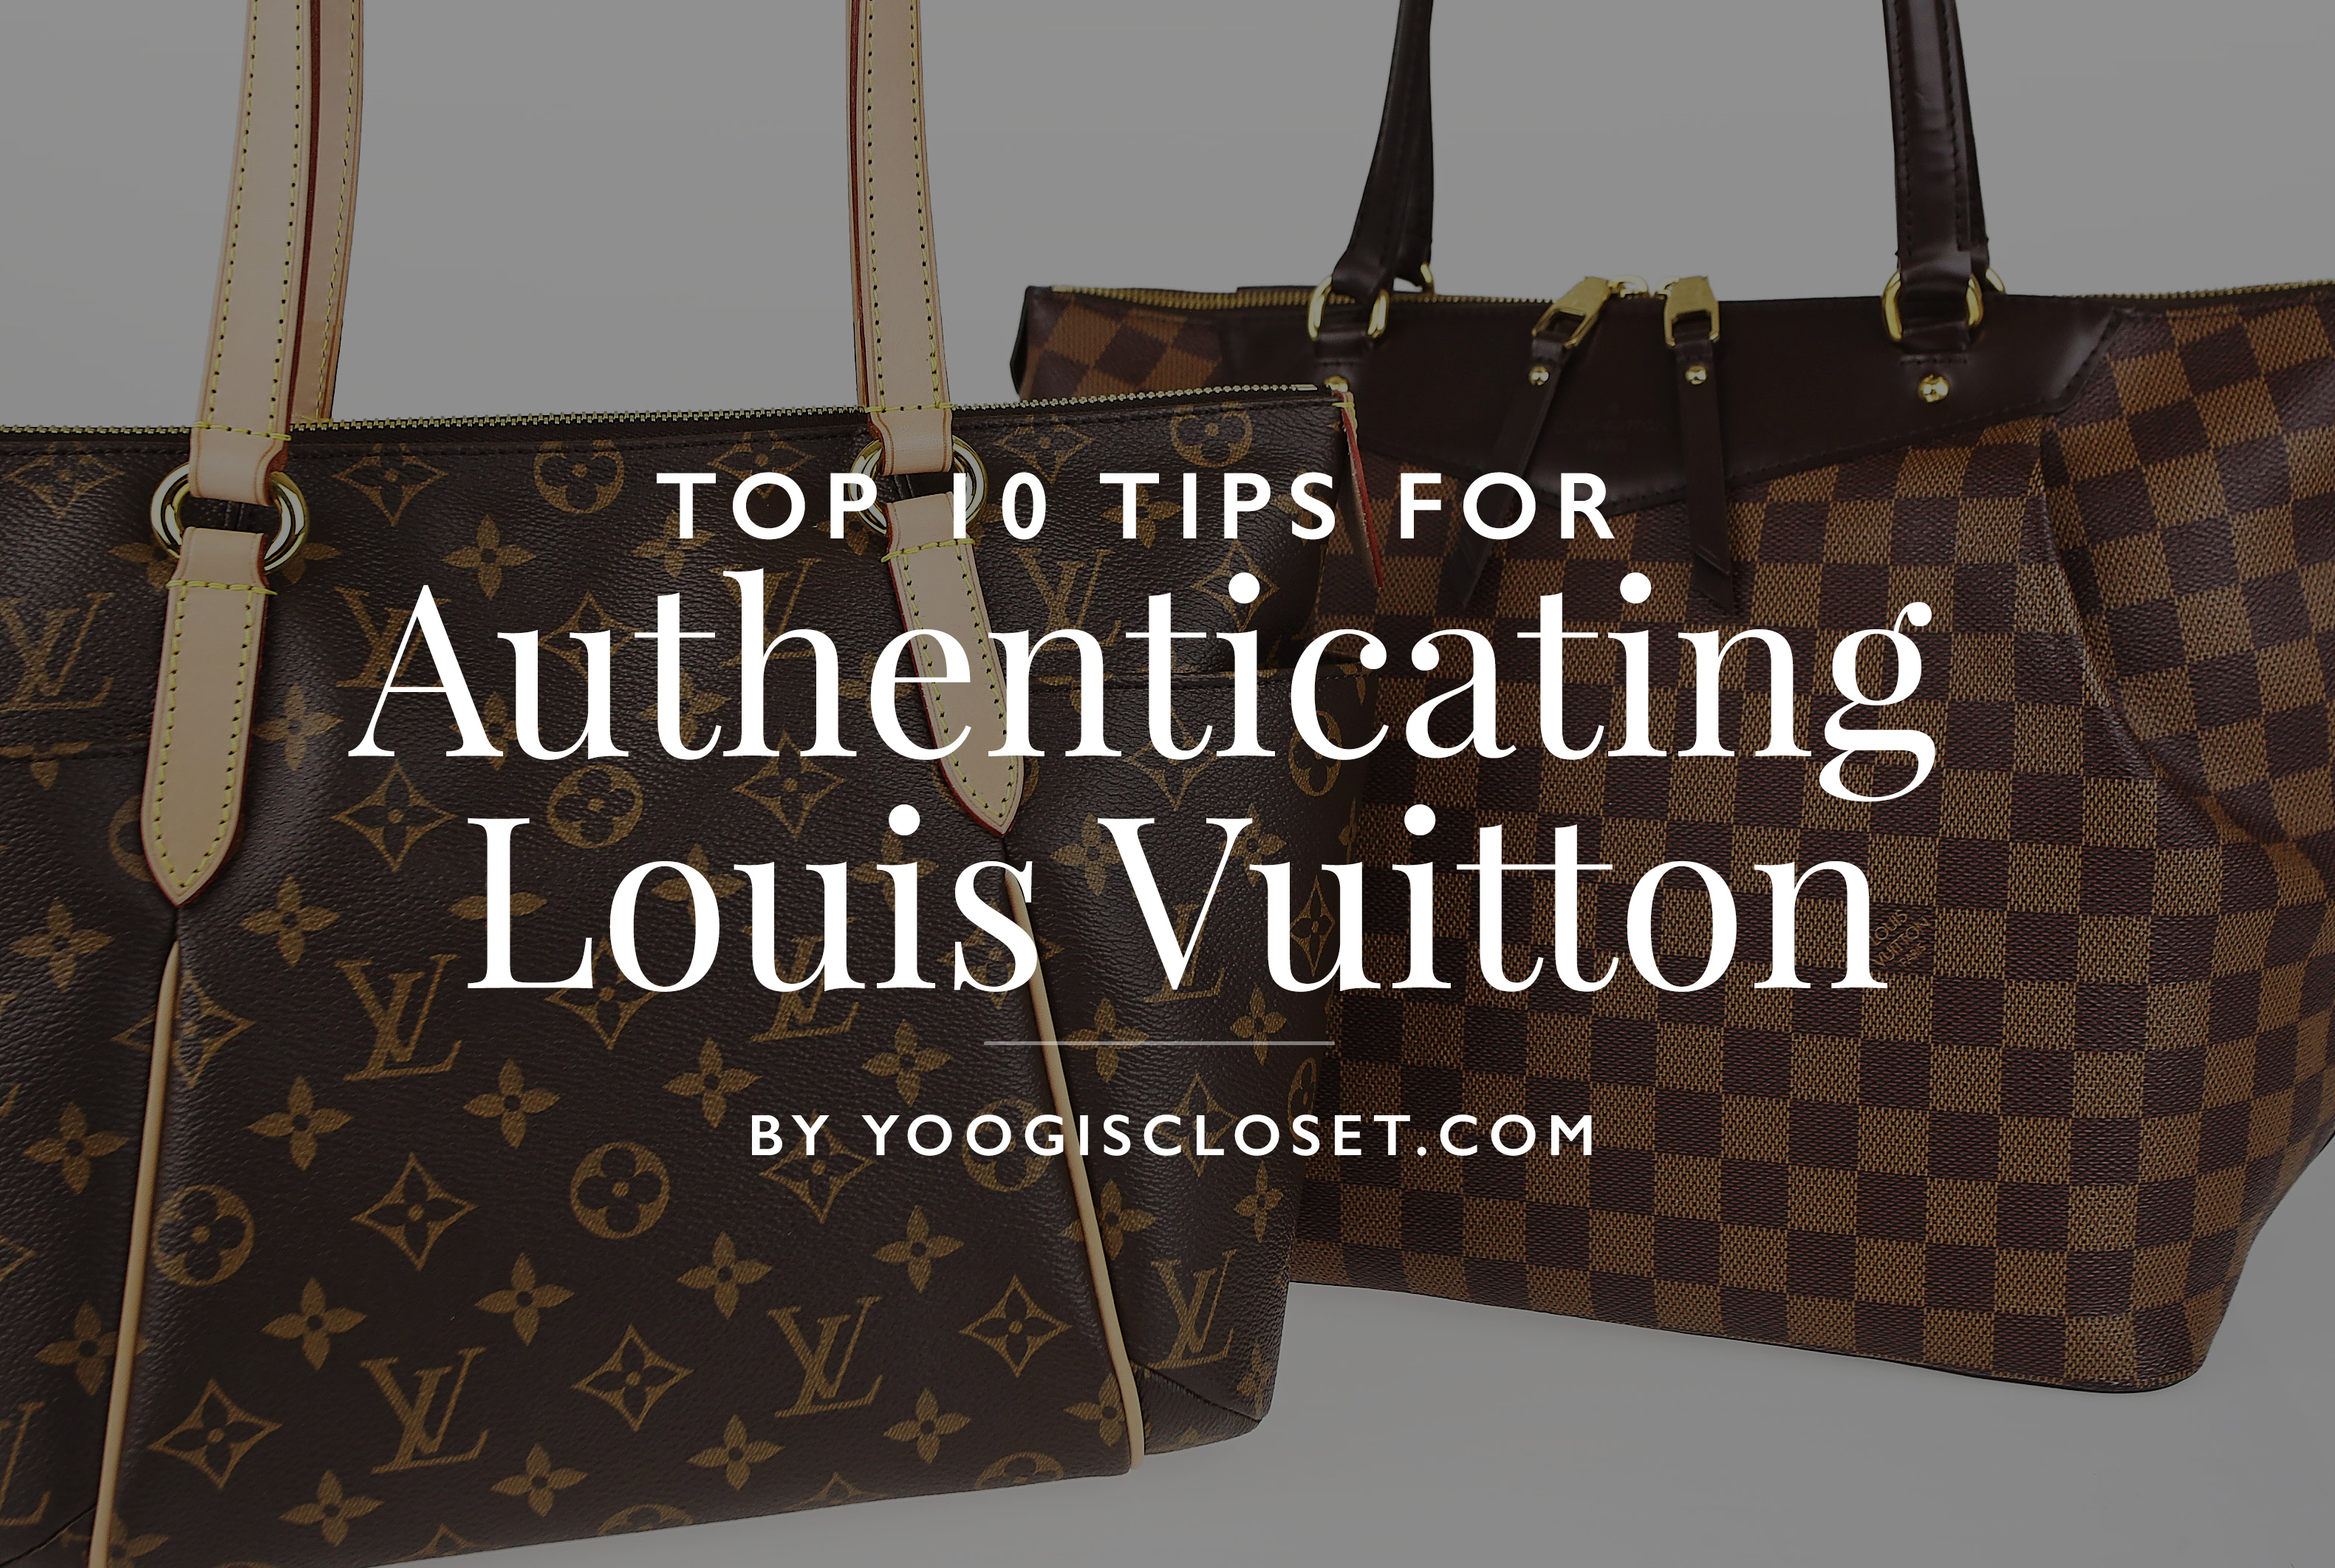 Top 10 Tips For Authenticating Louis Vuitton Yoogis Closet Blog